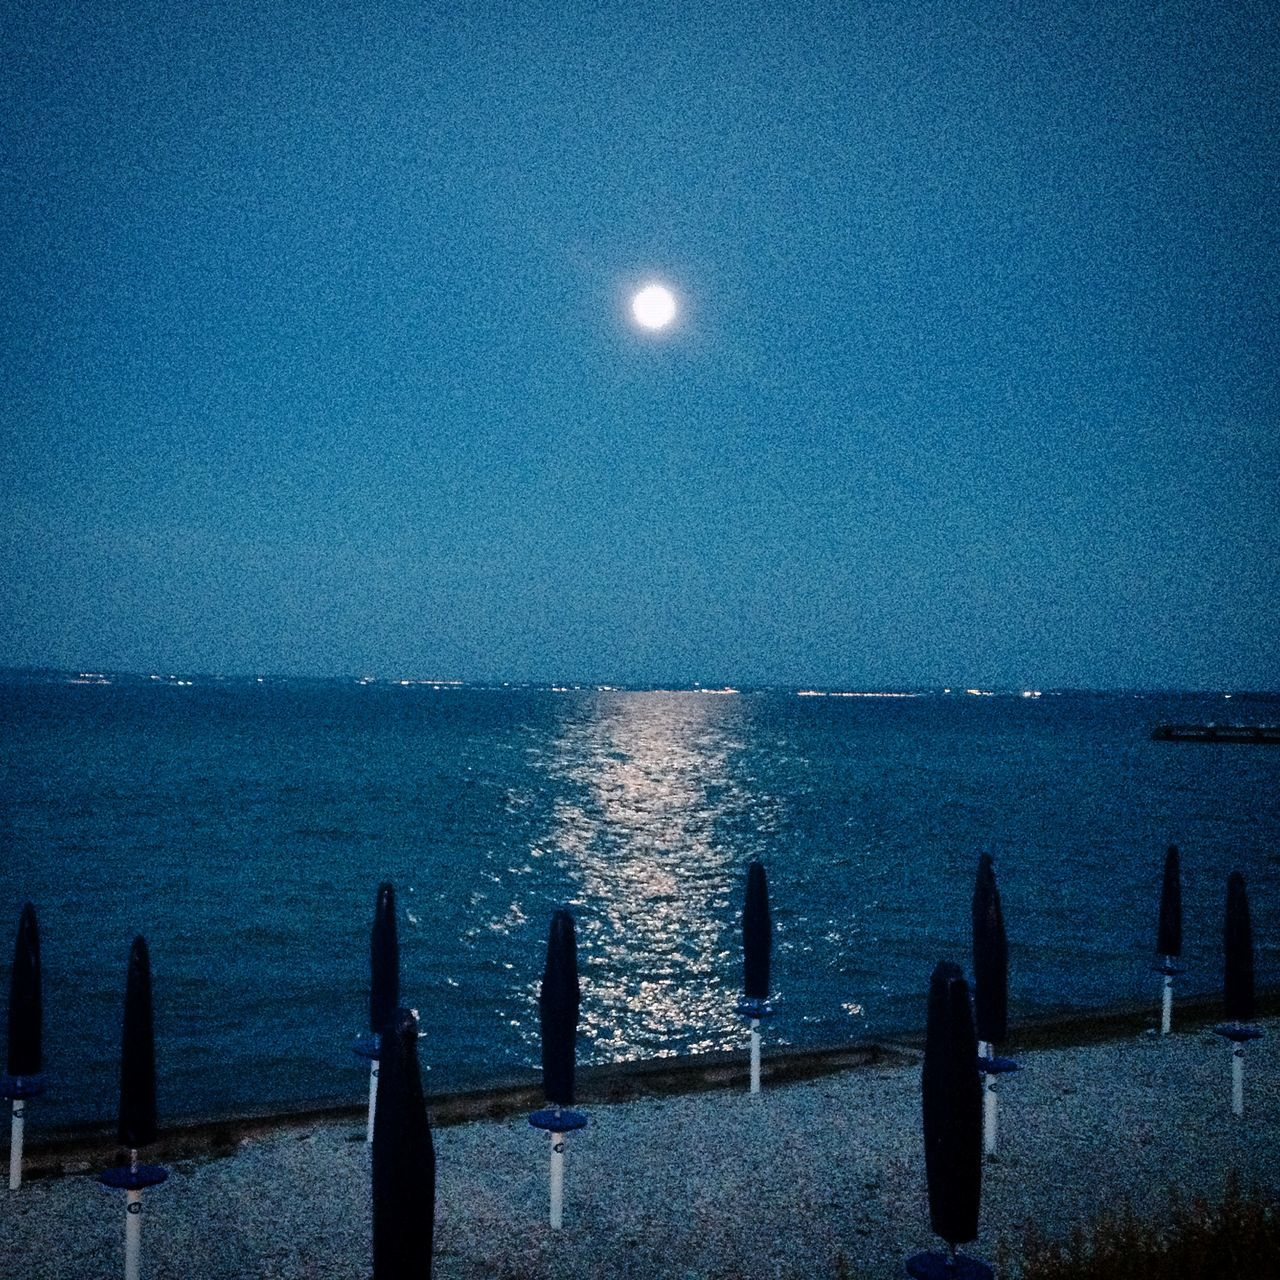 moon, sea, scenics, nature, beauty in nature, tranquil scene, horizon over water, water, tranquility, night, no people, sky, outdoors, clear sky, moonlight, astronomy